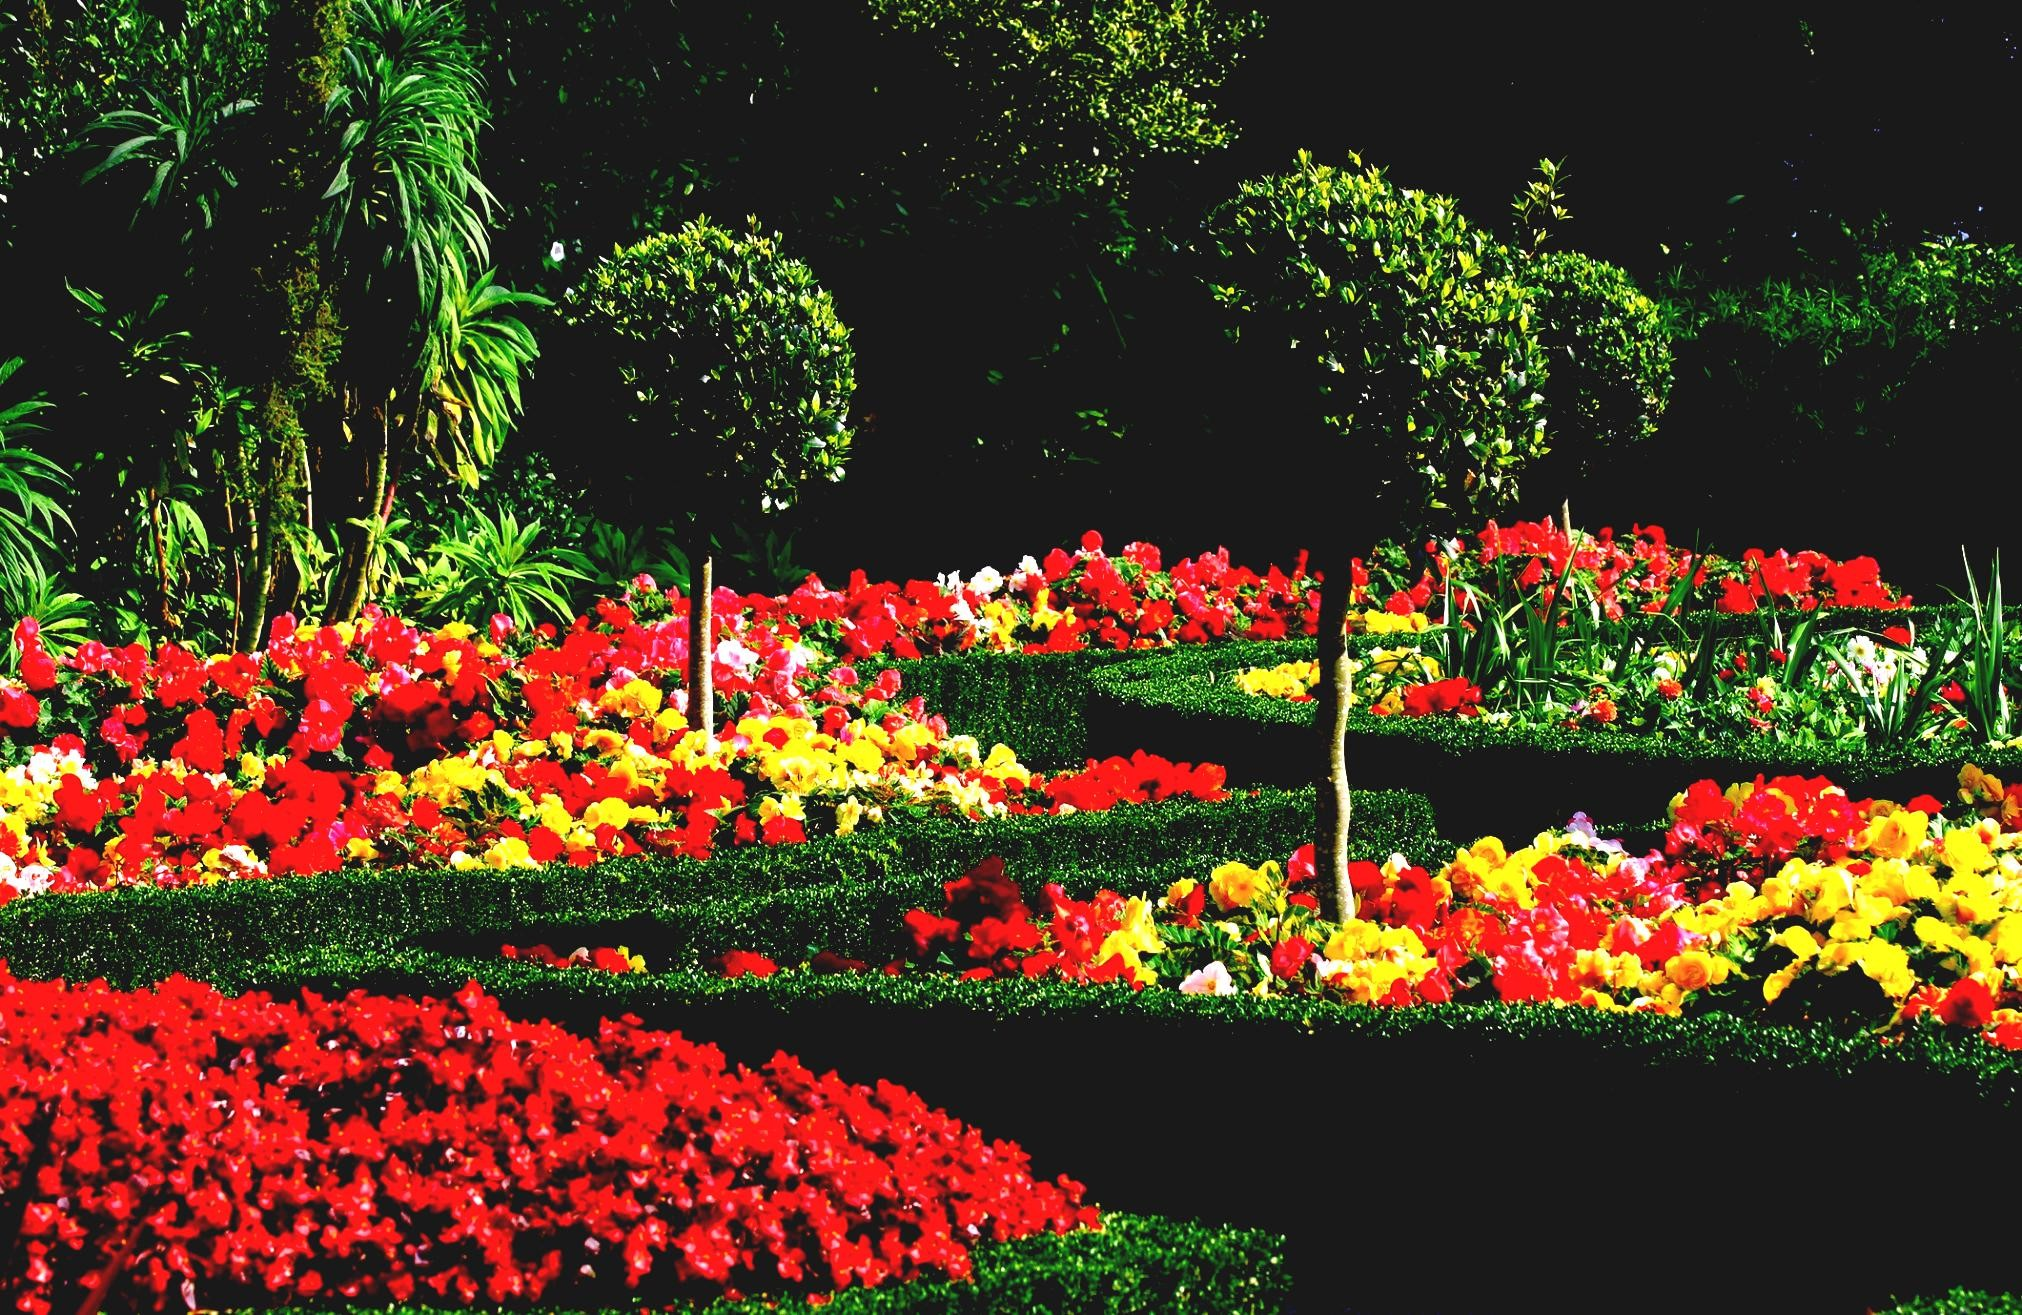 2022x1315 Beautiful Flower Garden Wallpapers Crazy Frankenstein Gardens Top Images  Colorful Pictures